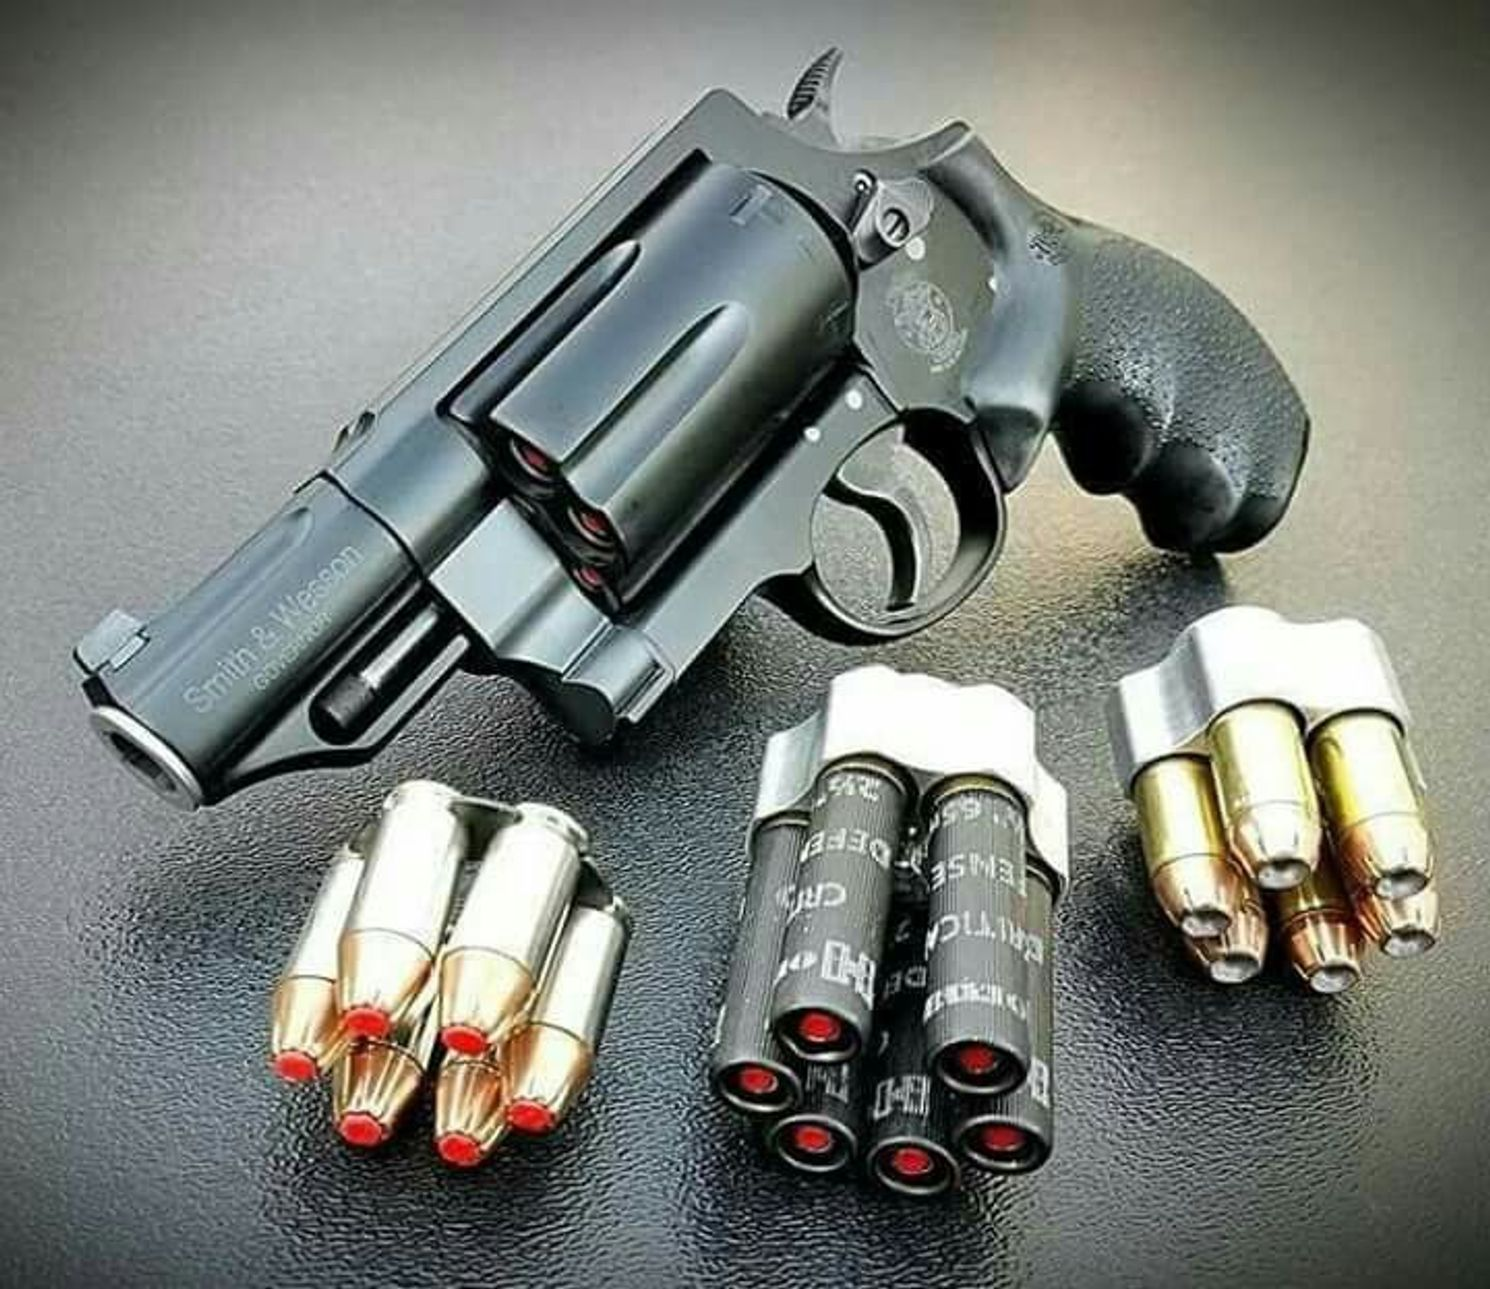 EXPLAINER: What Exactly Is a Revolver-Shotgun?